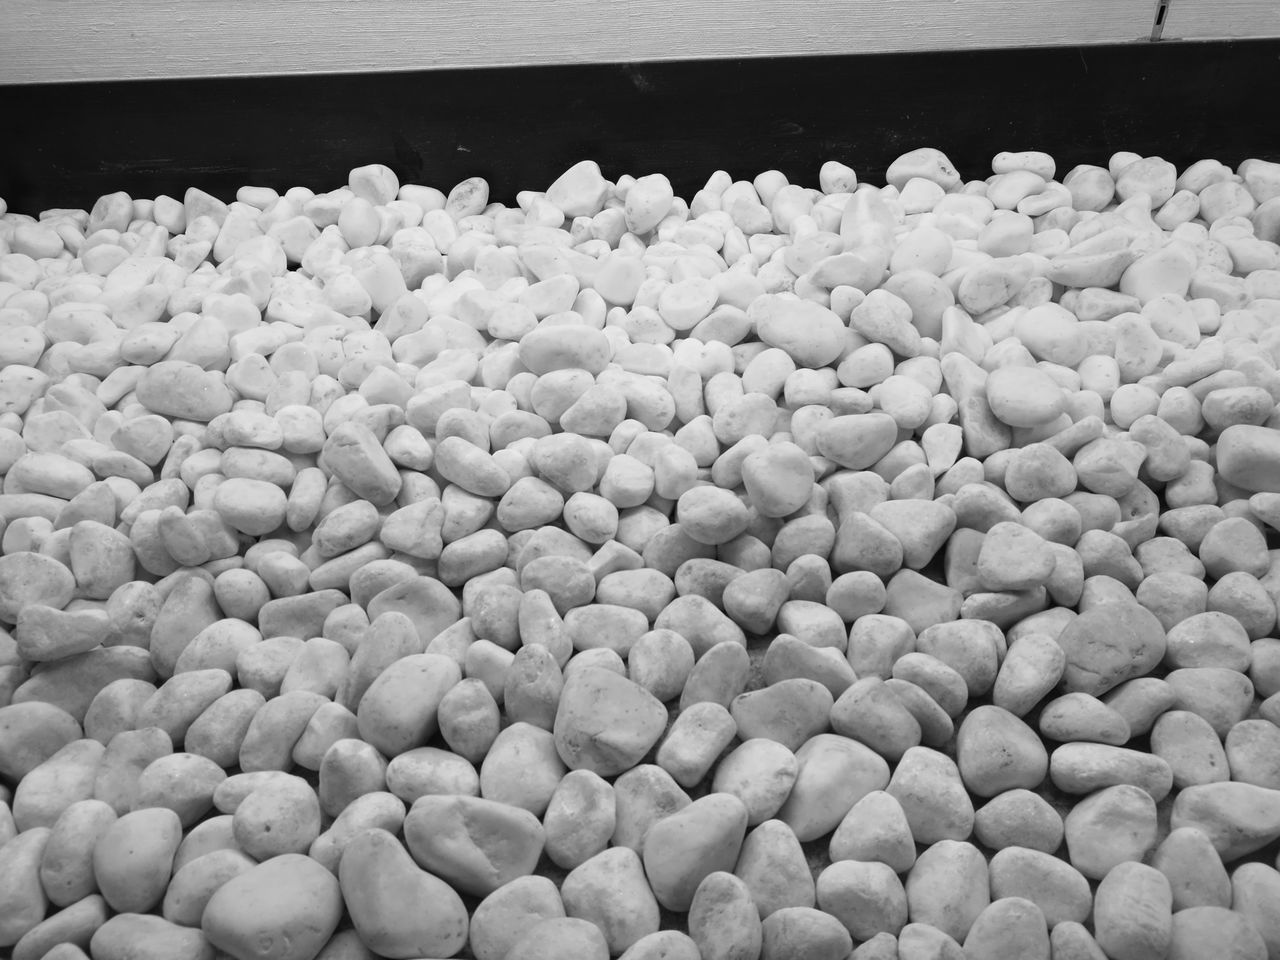 abundance, no people, large group of objects, food, food and drink, pebble, healthy eating, indoors, freshness, water, nature, sea, day, close-up, pebble beach